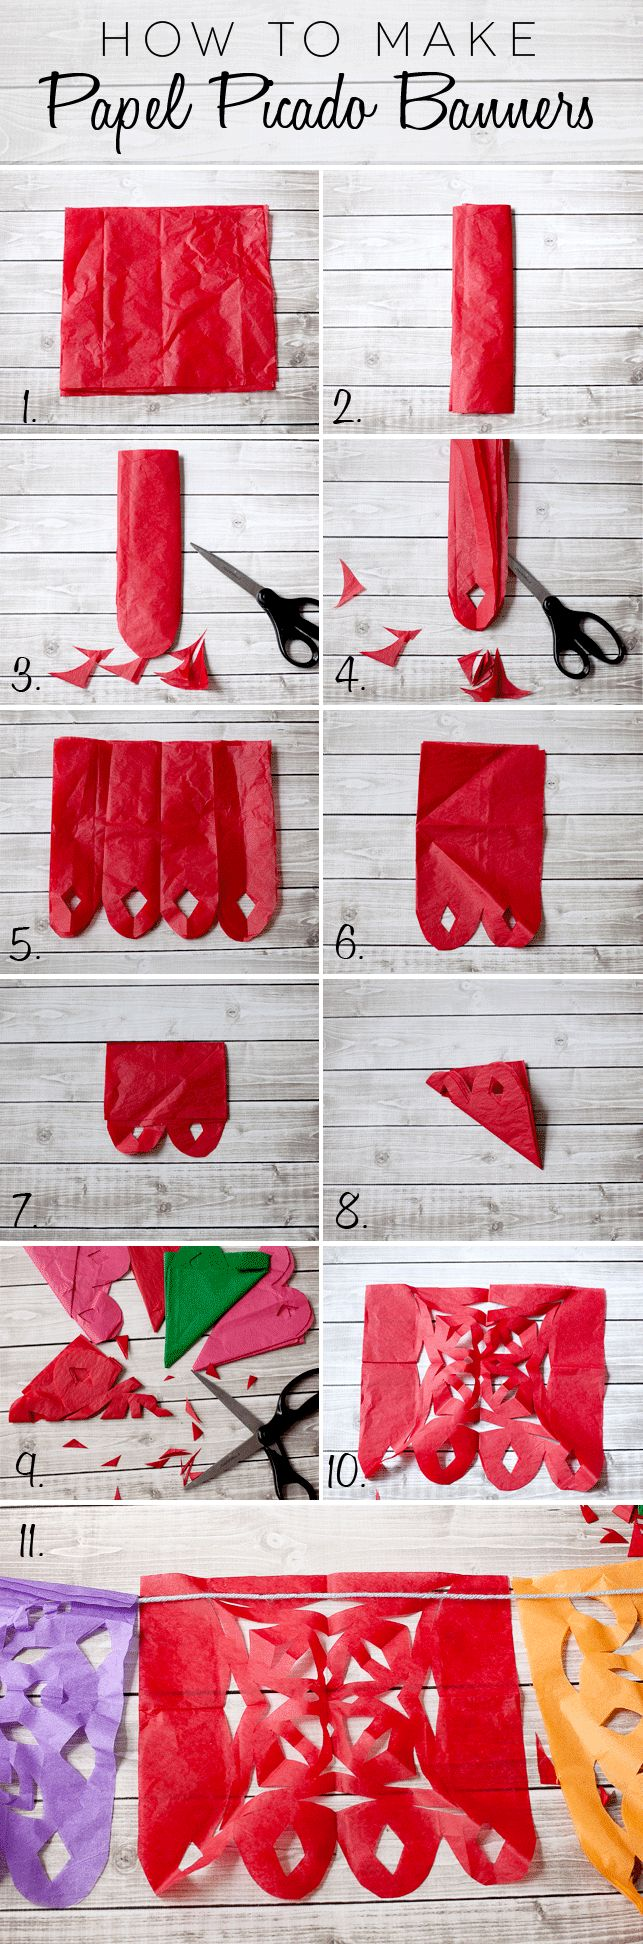 How to make mexican fiesta or Cinco de Mayo Papel Picado banners | frogprincepaperie.com